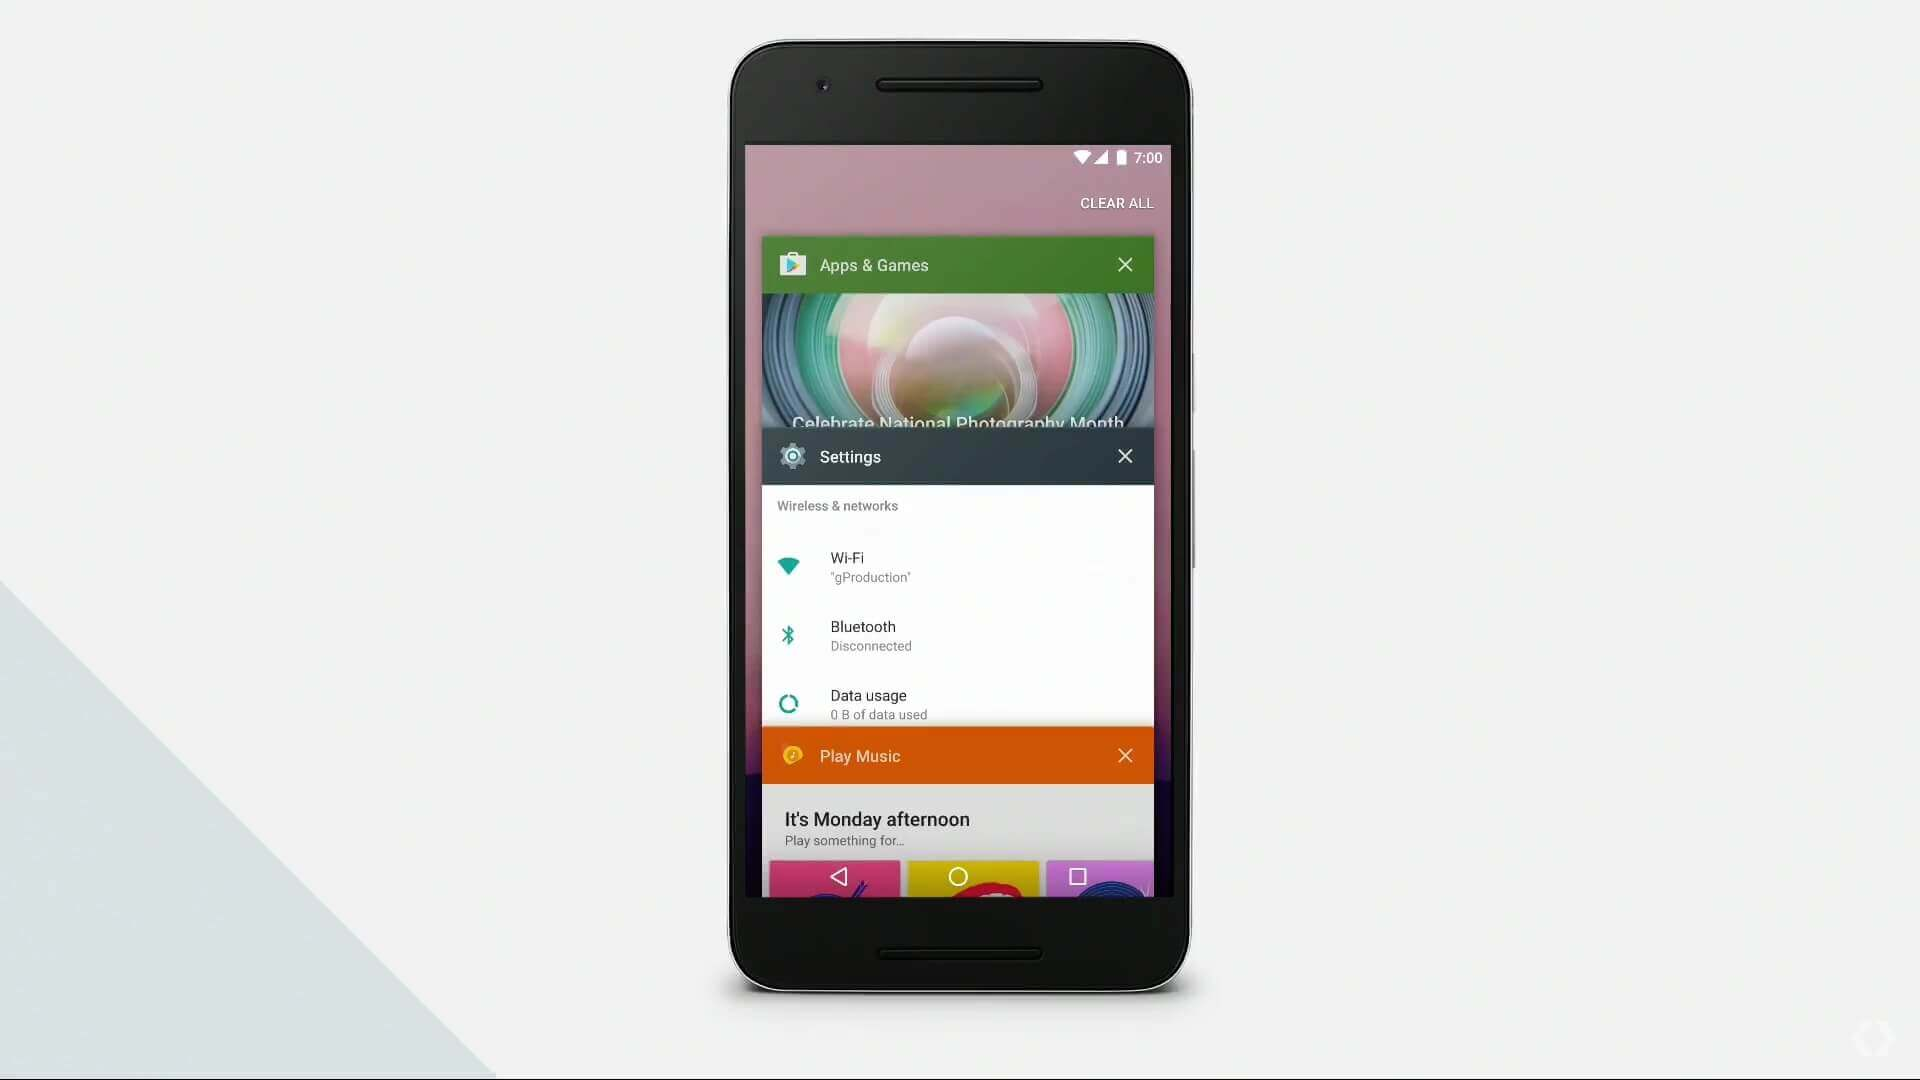 OS Android N